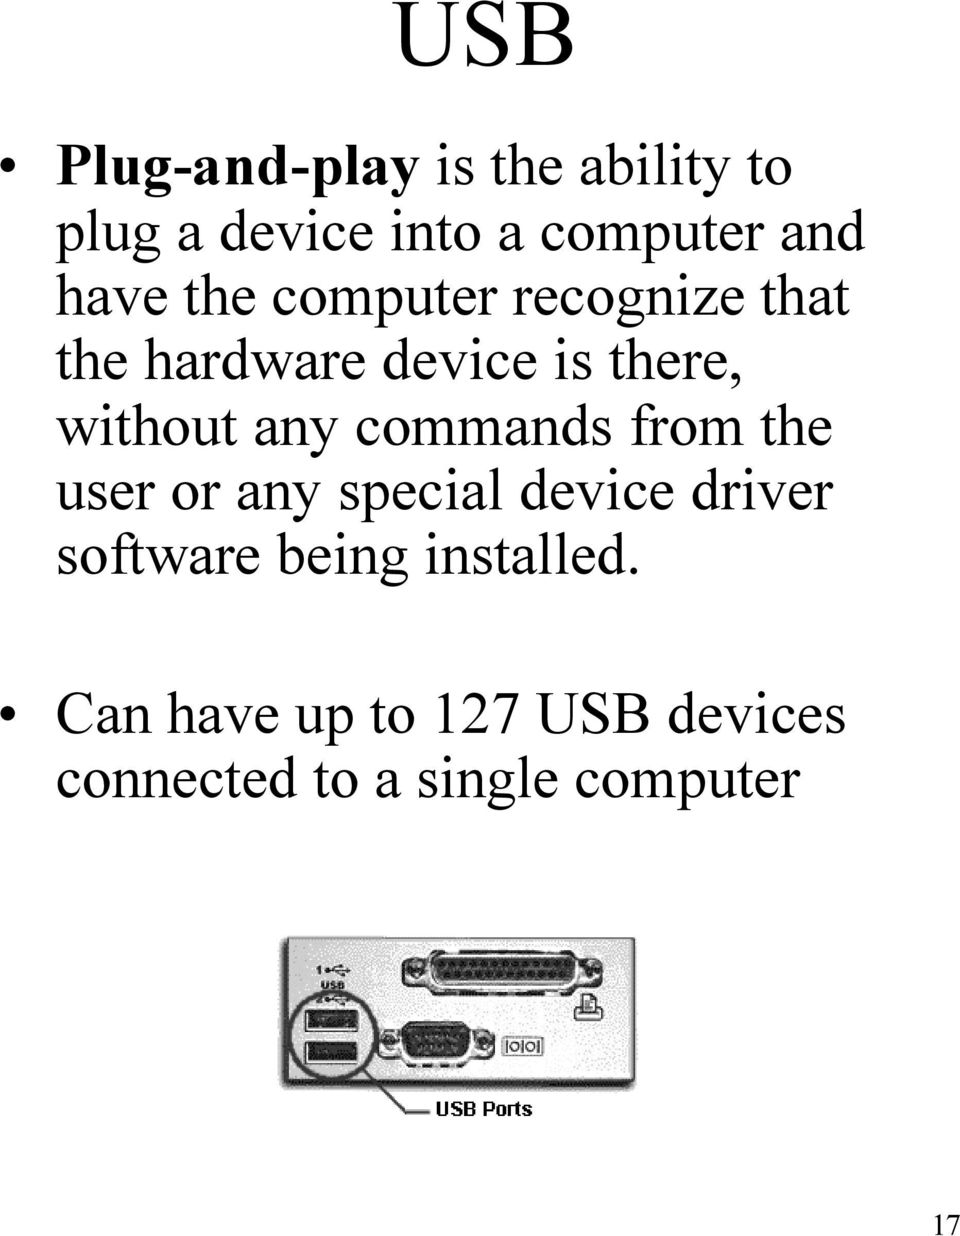 any commands from the user or any special device driver software being